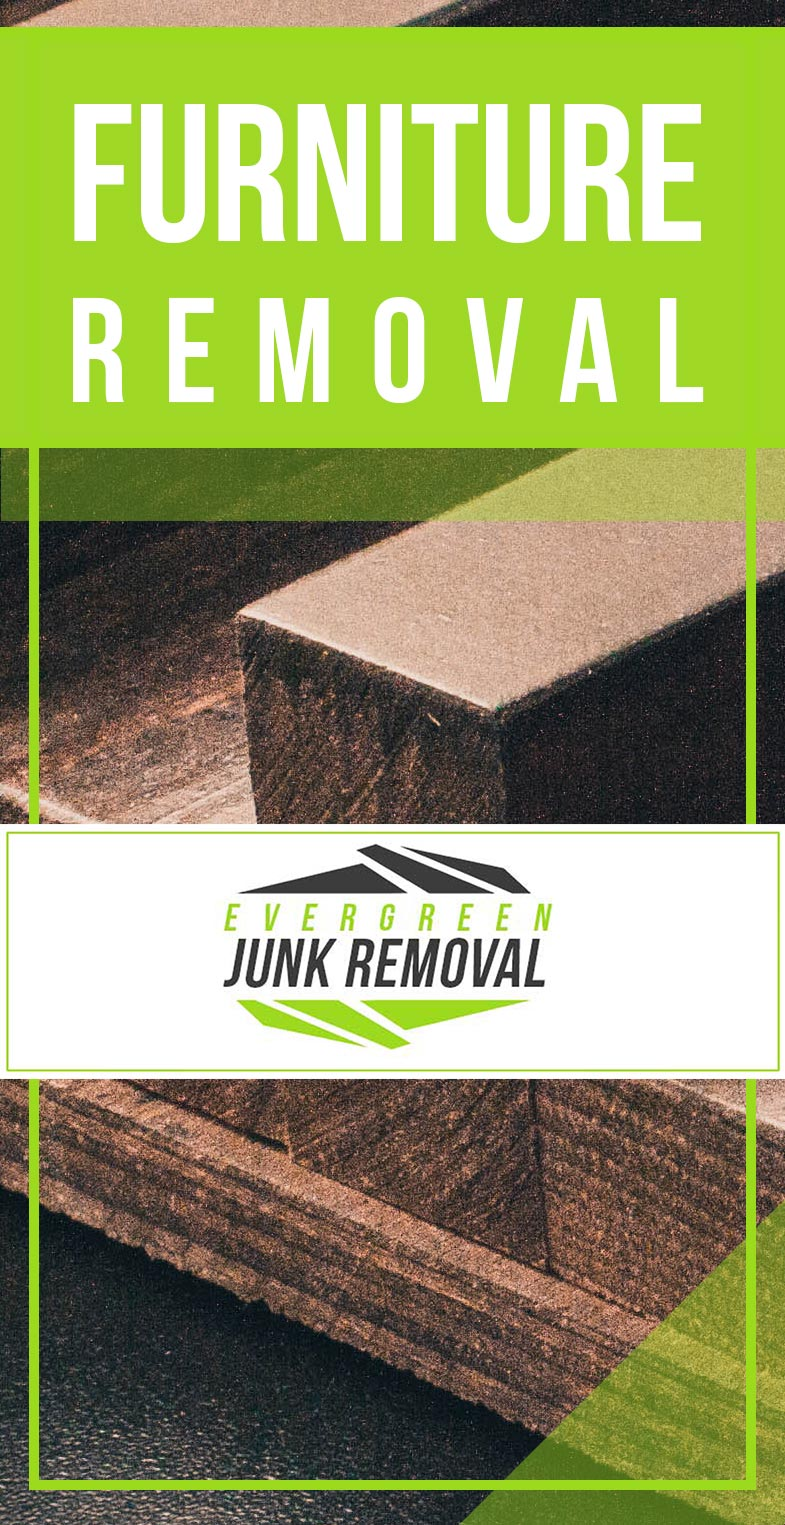 Junk Removal Lake Park Furniture Removal